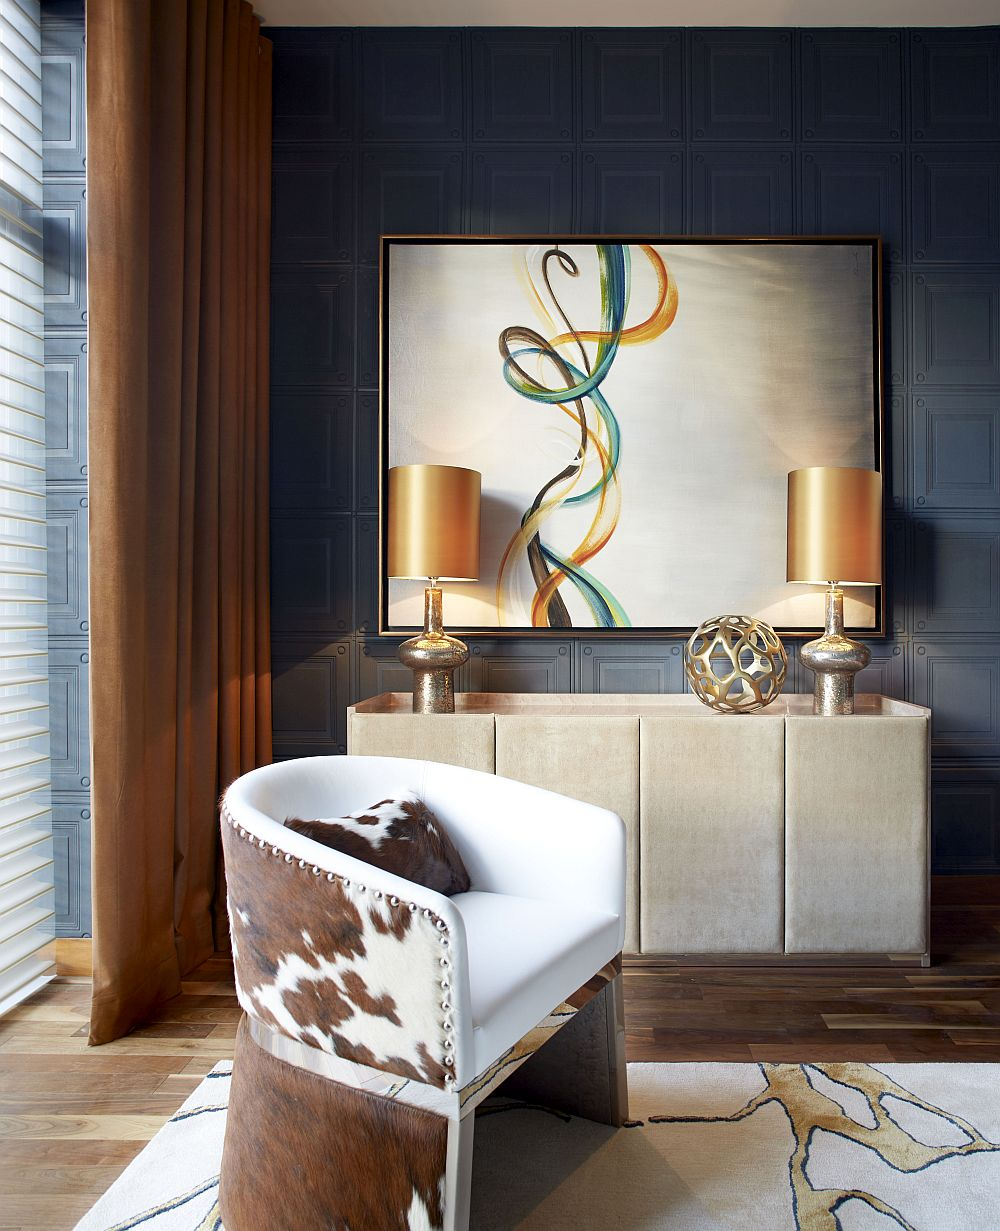 Exquisite table lamps bring a hint of gold to the setting